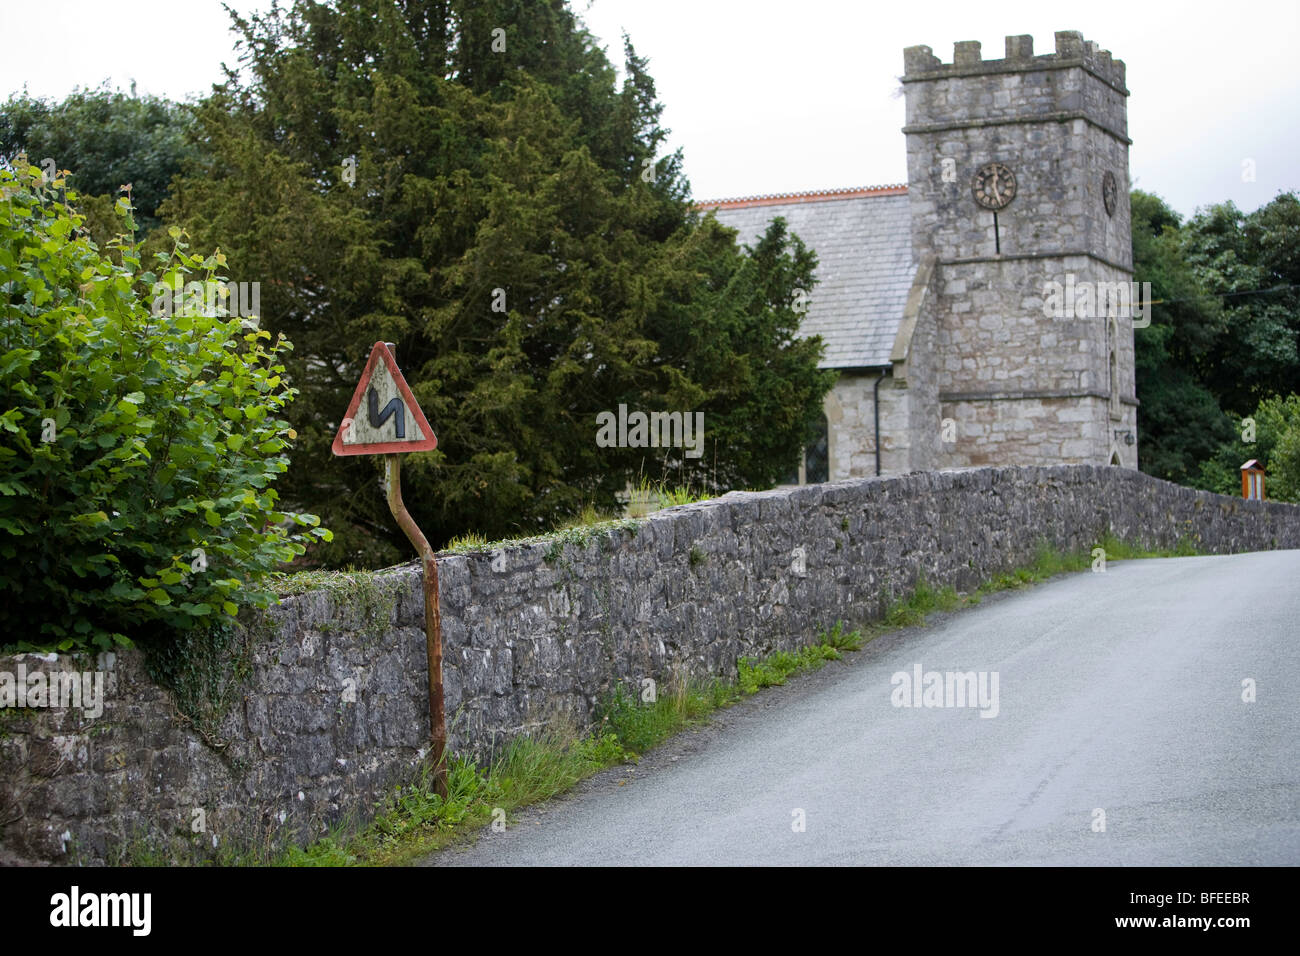 Church nead double bend first to the left road sign. Crooked sign on crooked post. Pen-y-Dyffryn. Wales. United - Stock Image